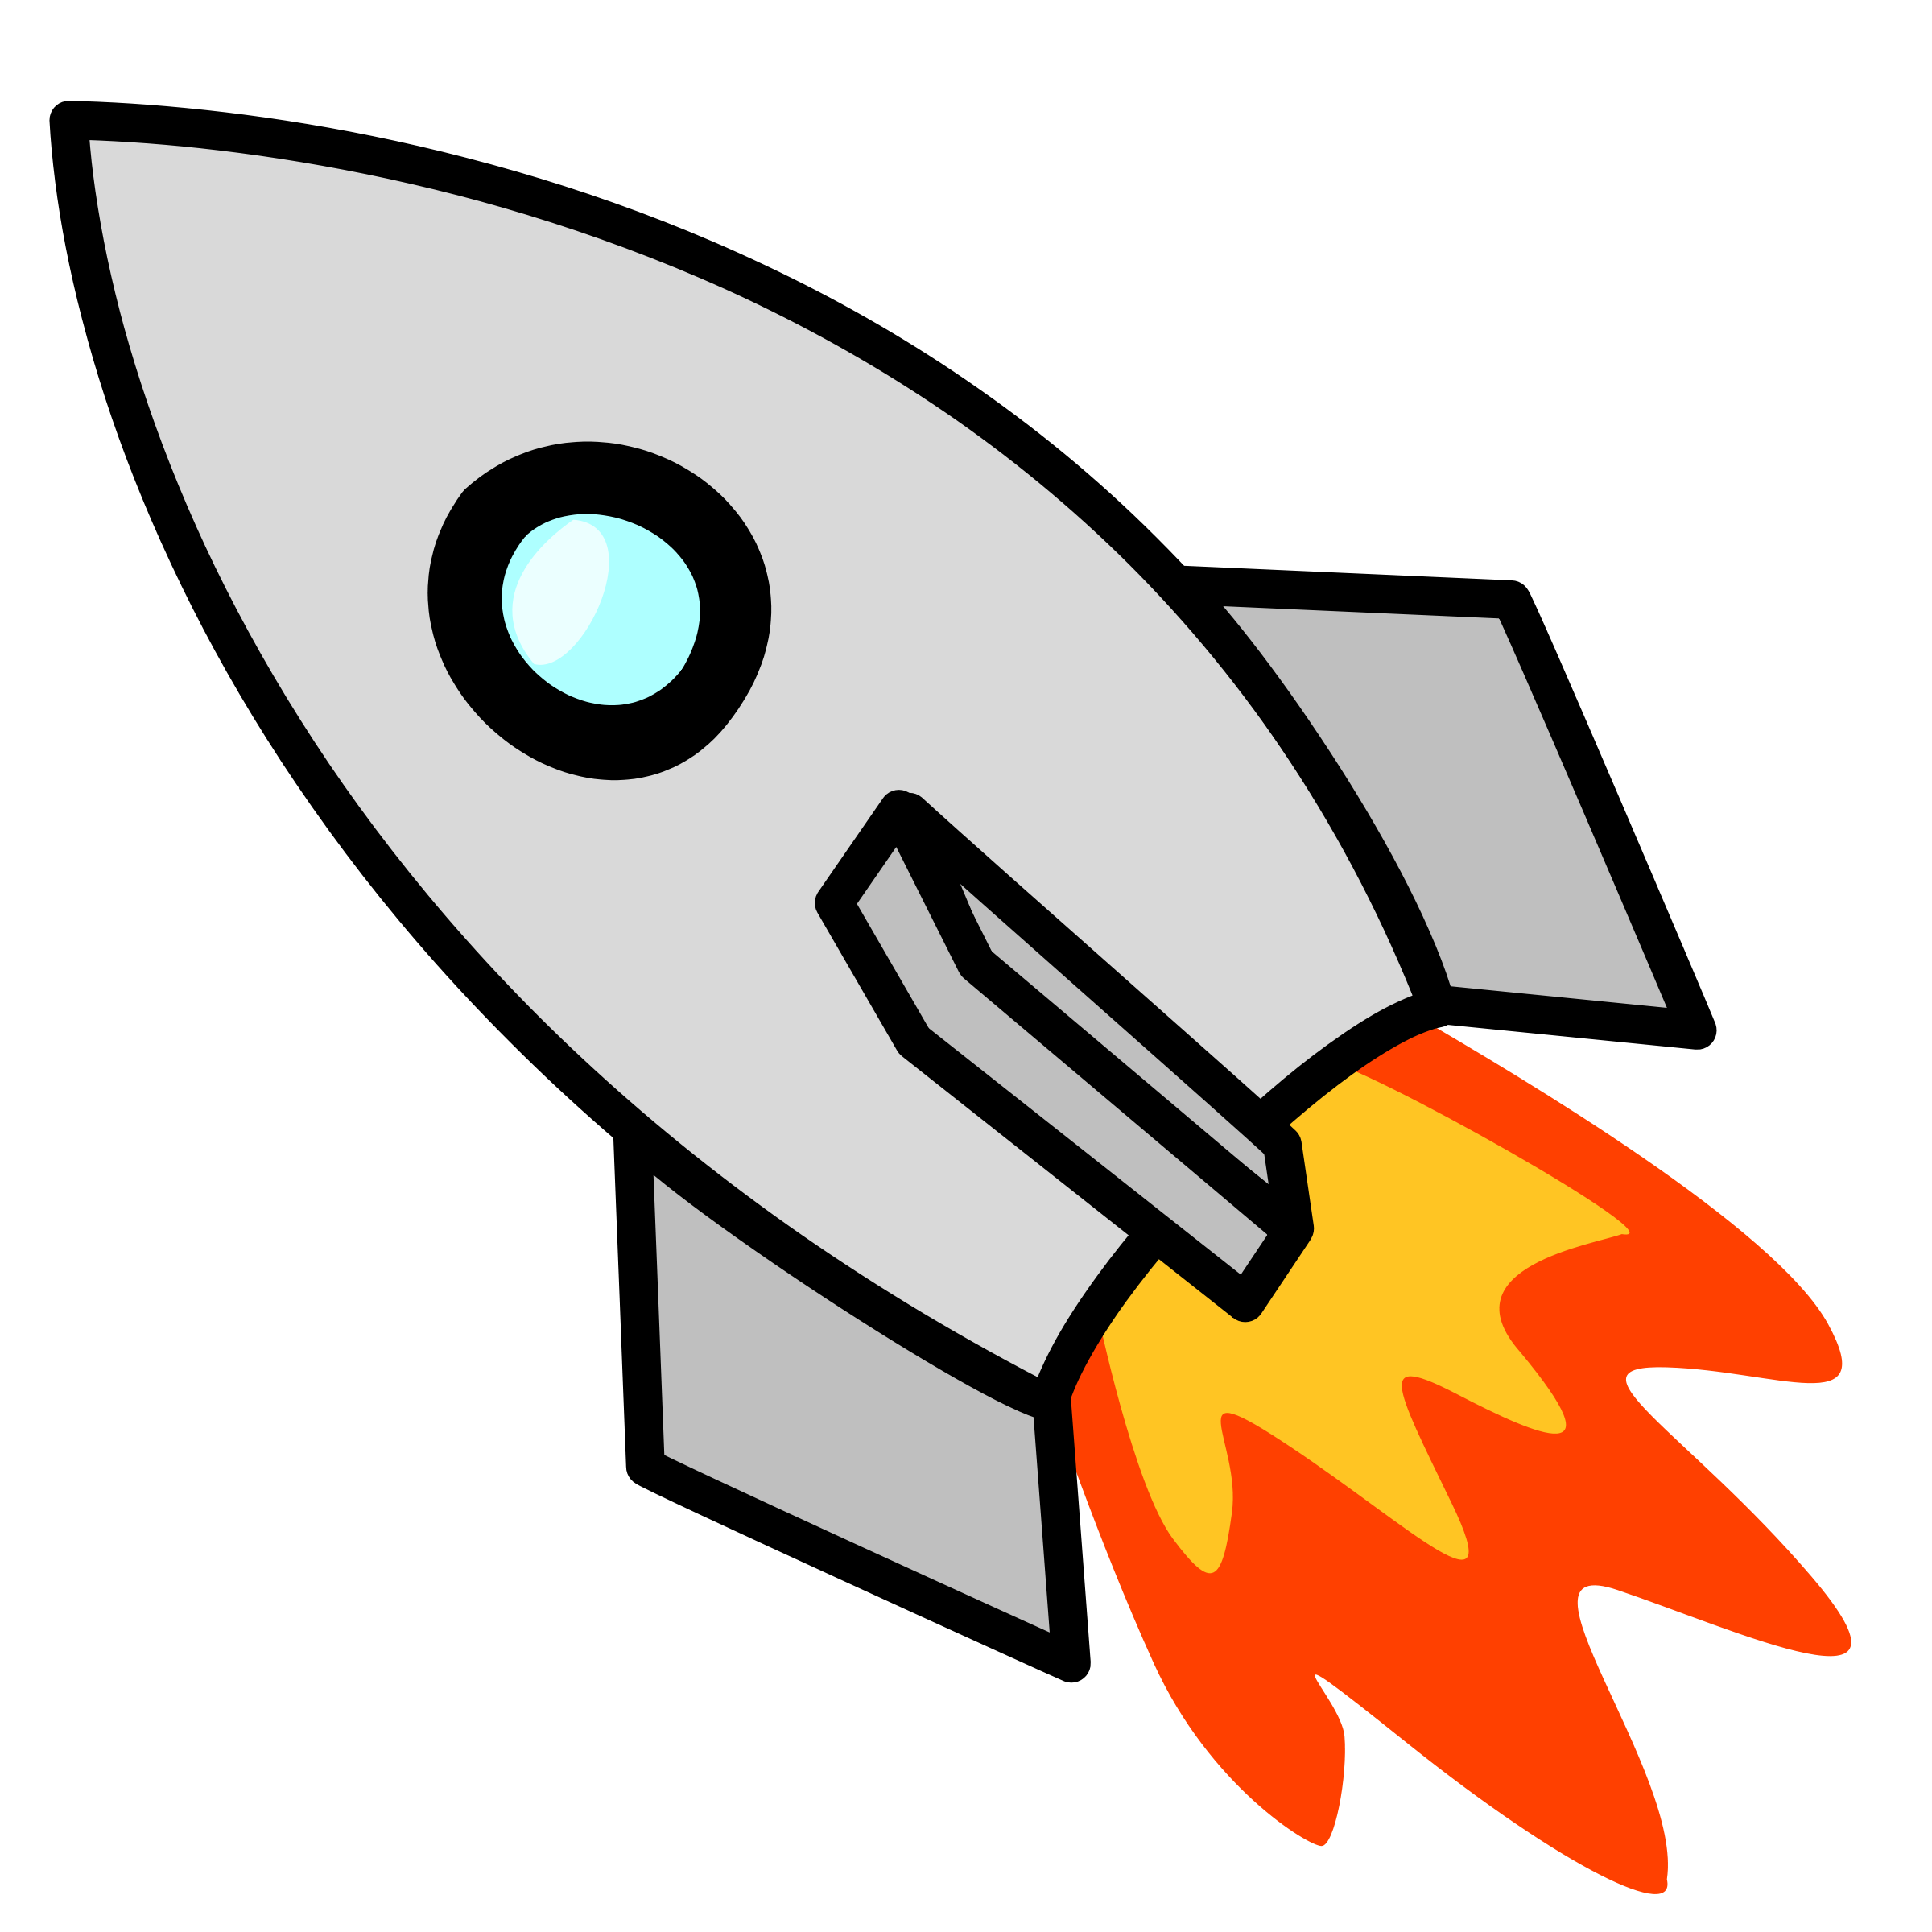 Spaceship clipart rainbow. Rocket cute pencil and